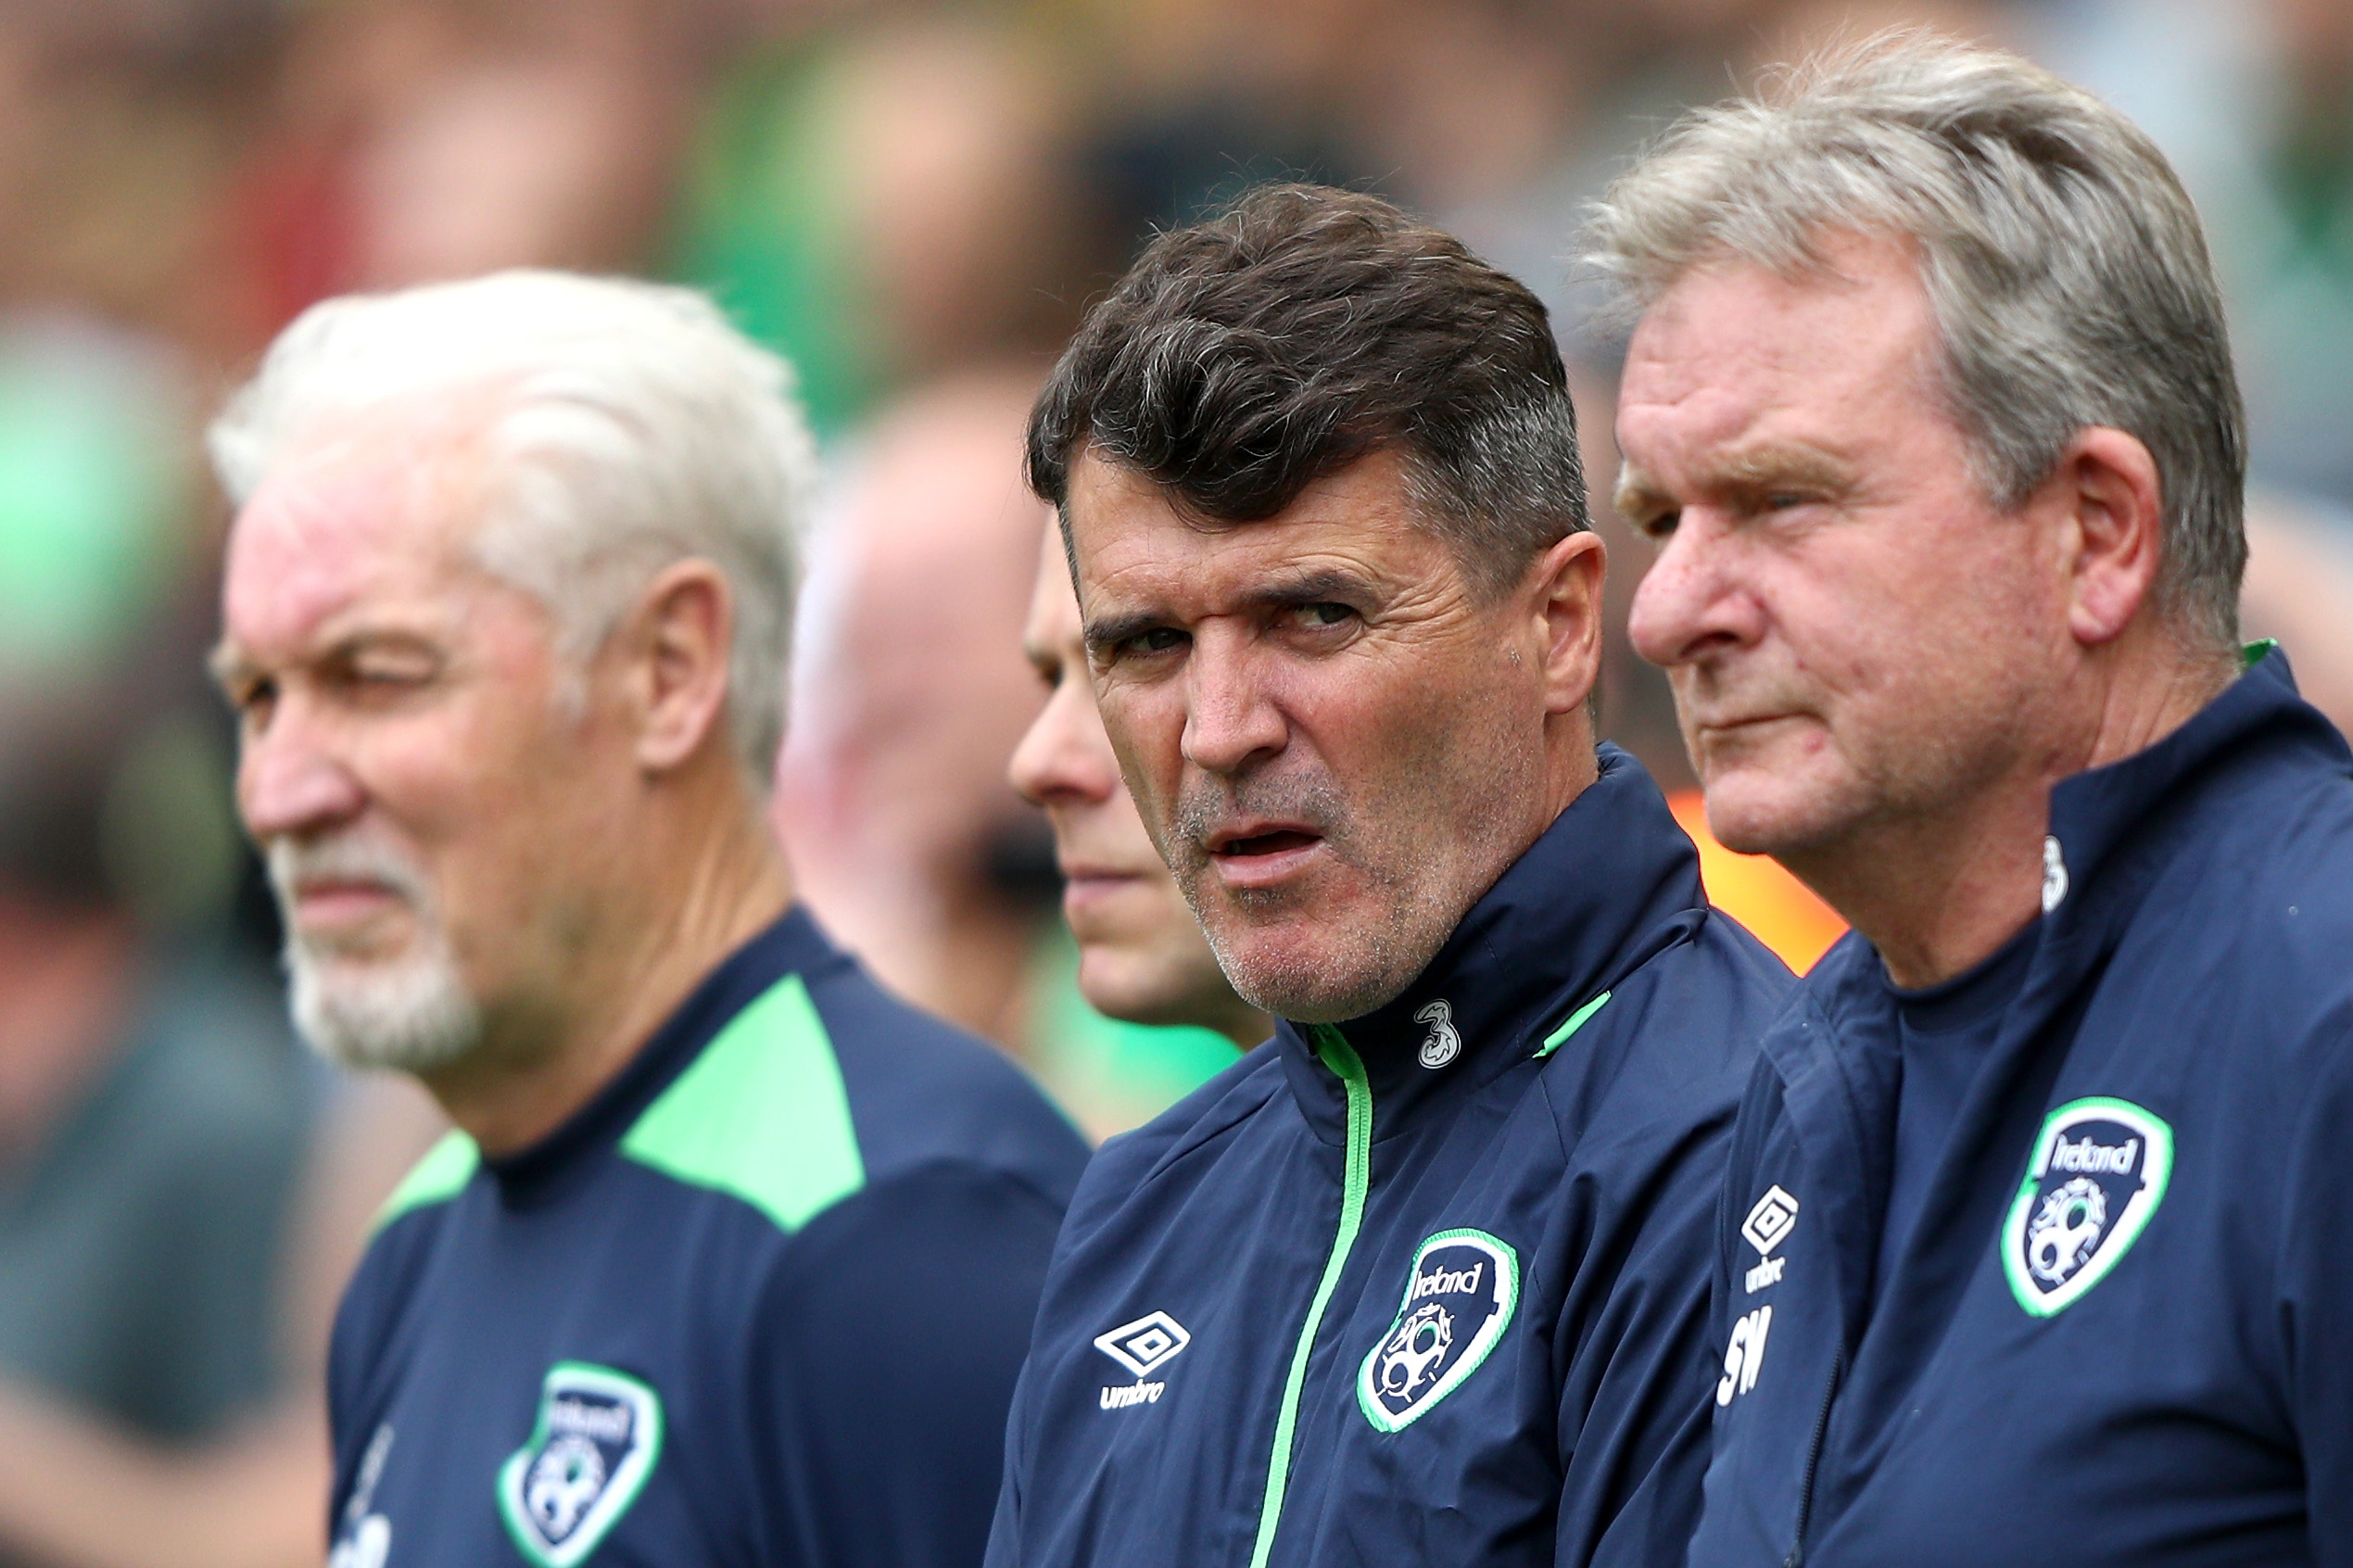 Roy Keane says players anxious about getting hurt should 'play chess' instead